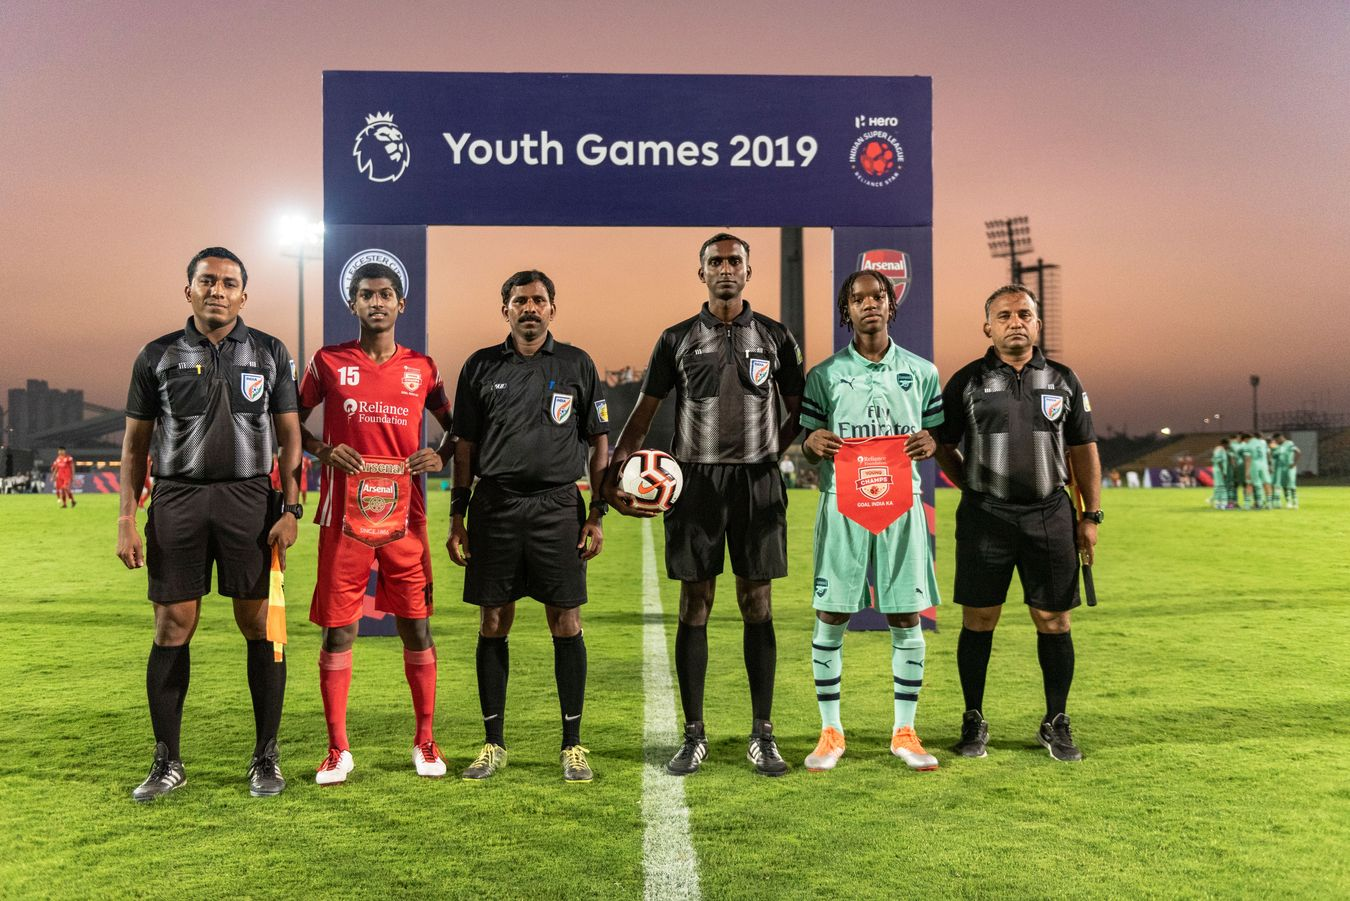 Match officials and captains of Reliance Young Champs and Arsenal at the 2019 Youth Games